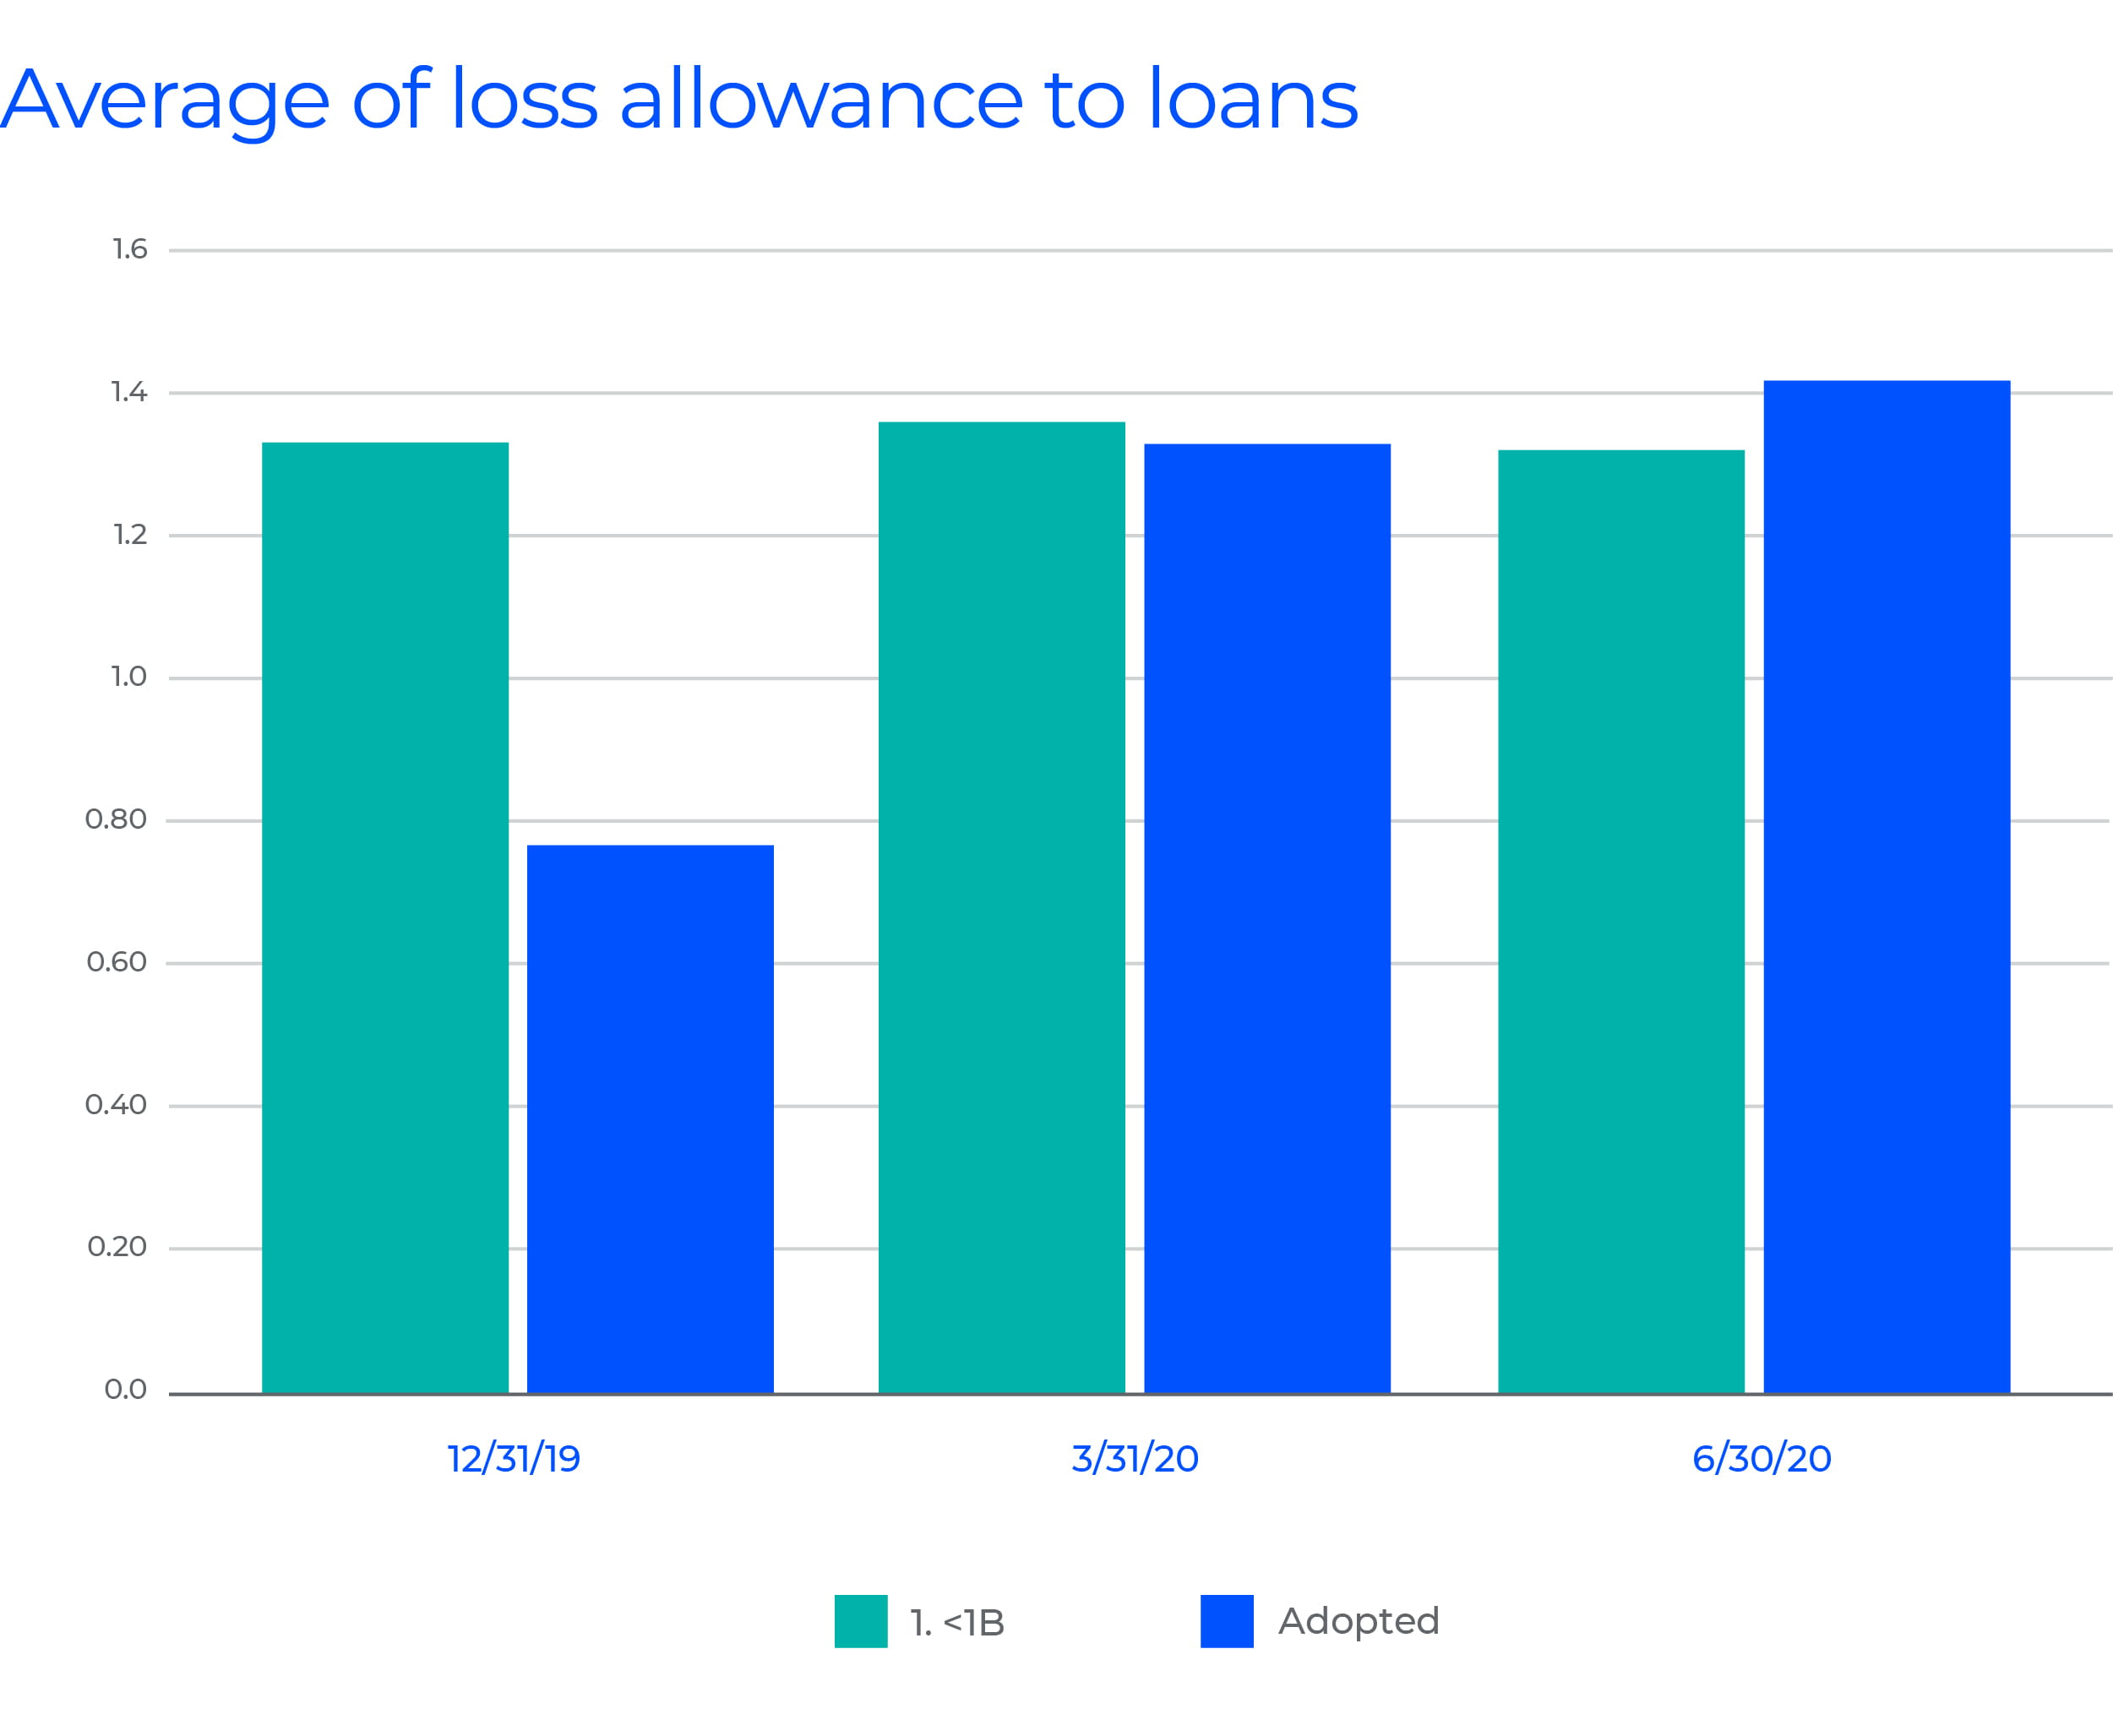 Average of loss allowance to loans graph